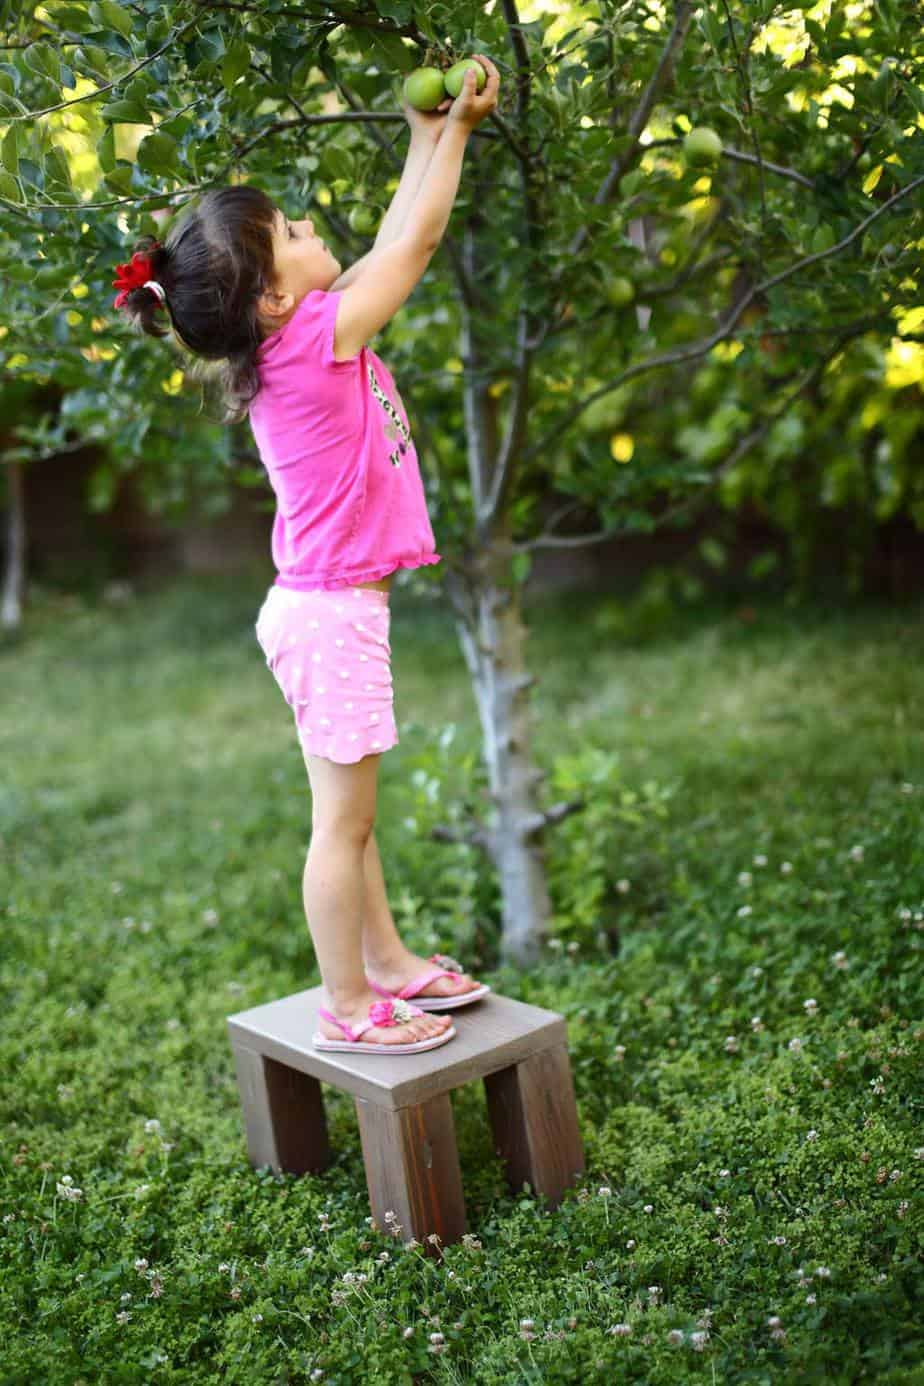 girl reaching for apples on the step stool